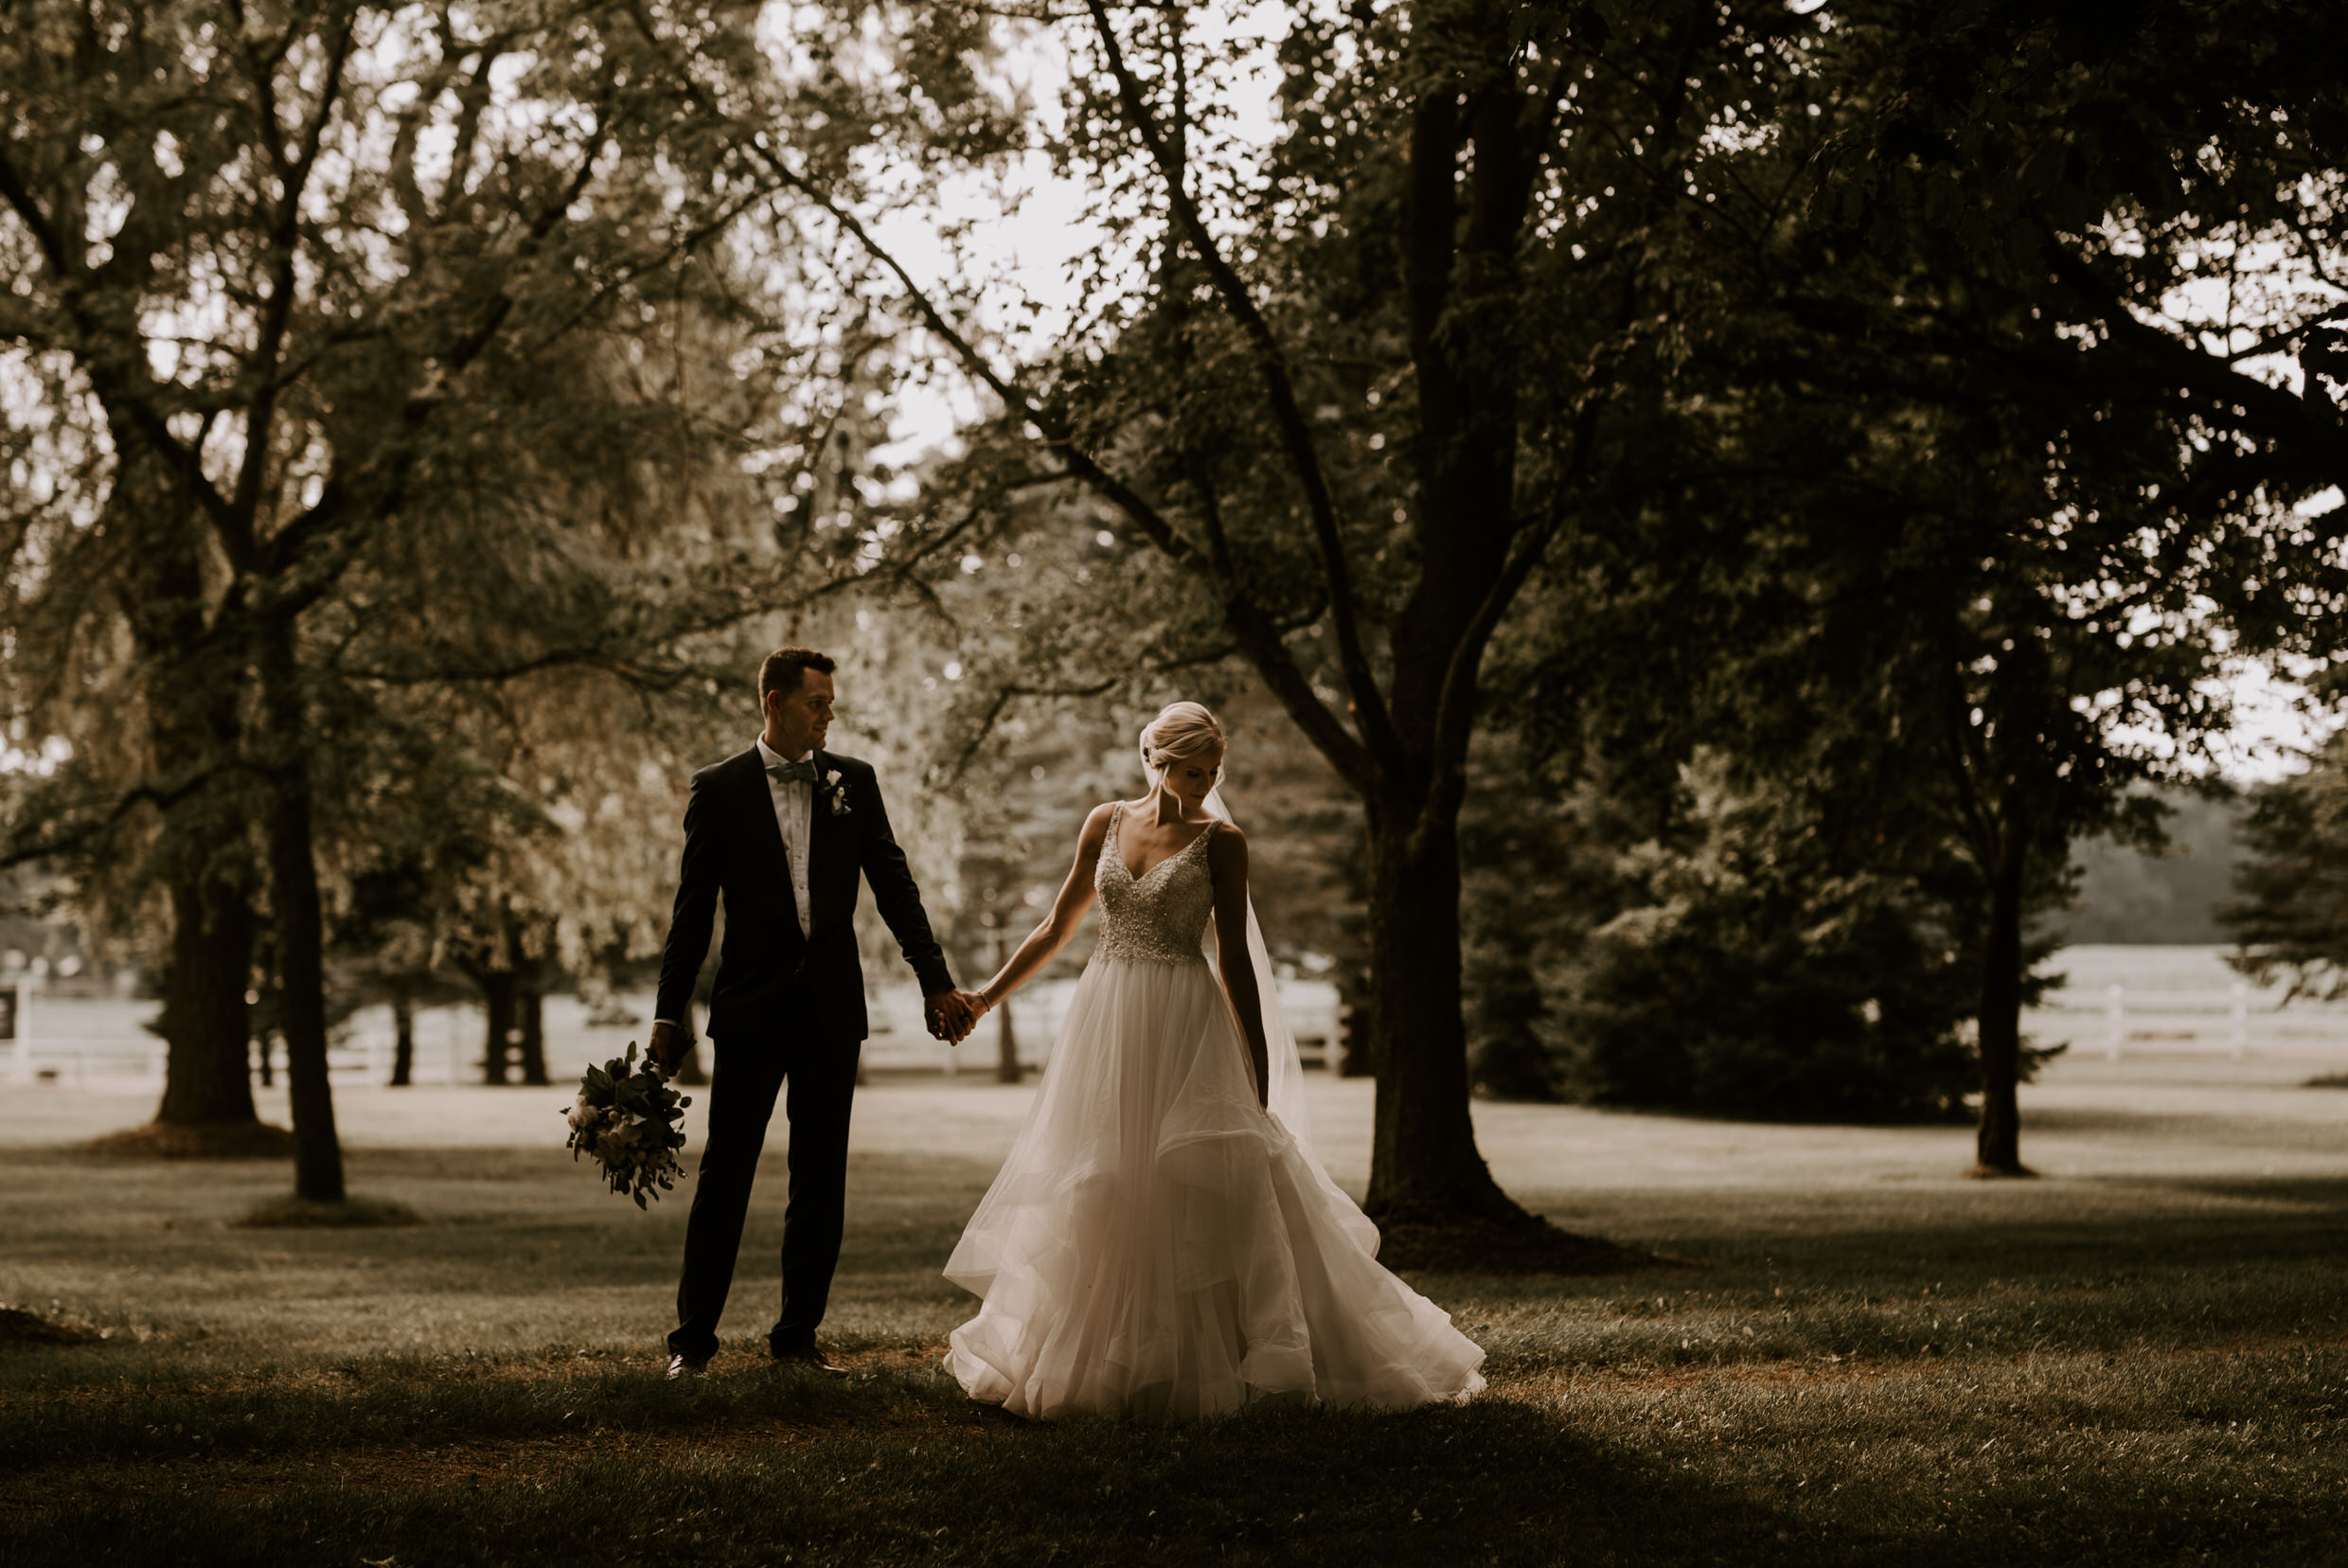 Belcroft Estates Wedding - bride and groom dramatic portrait